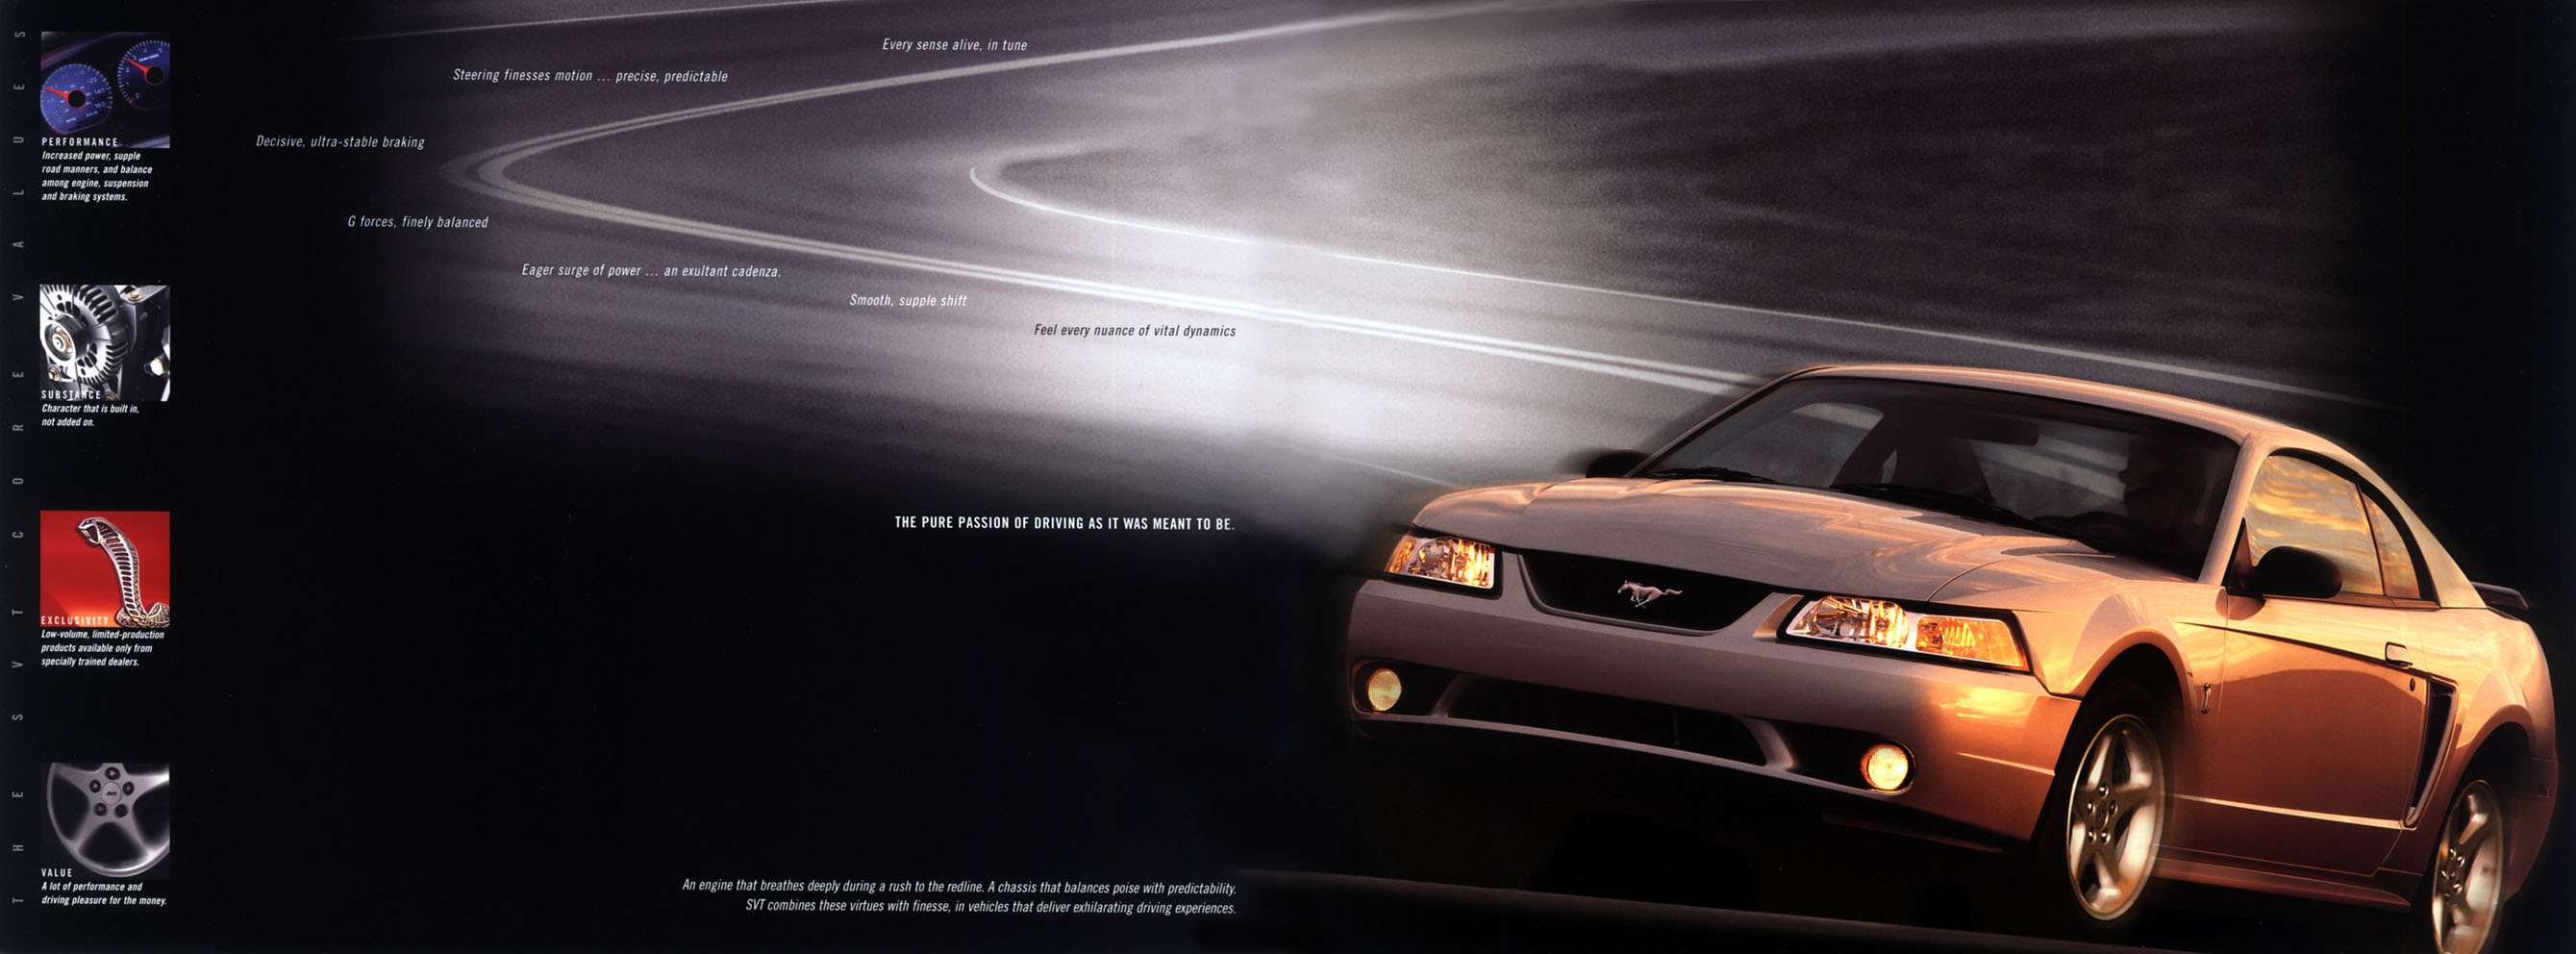 Hot Com Car Pictures - Car Canyon Ford